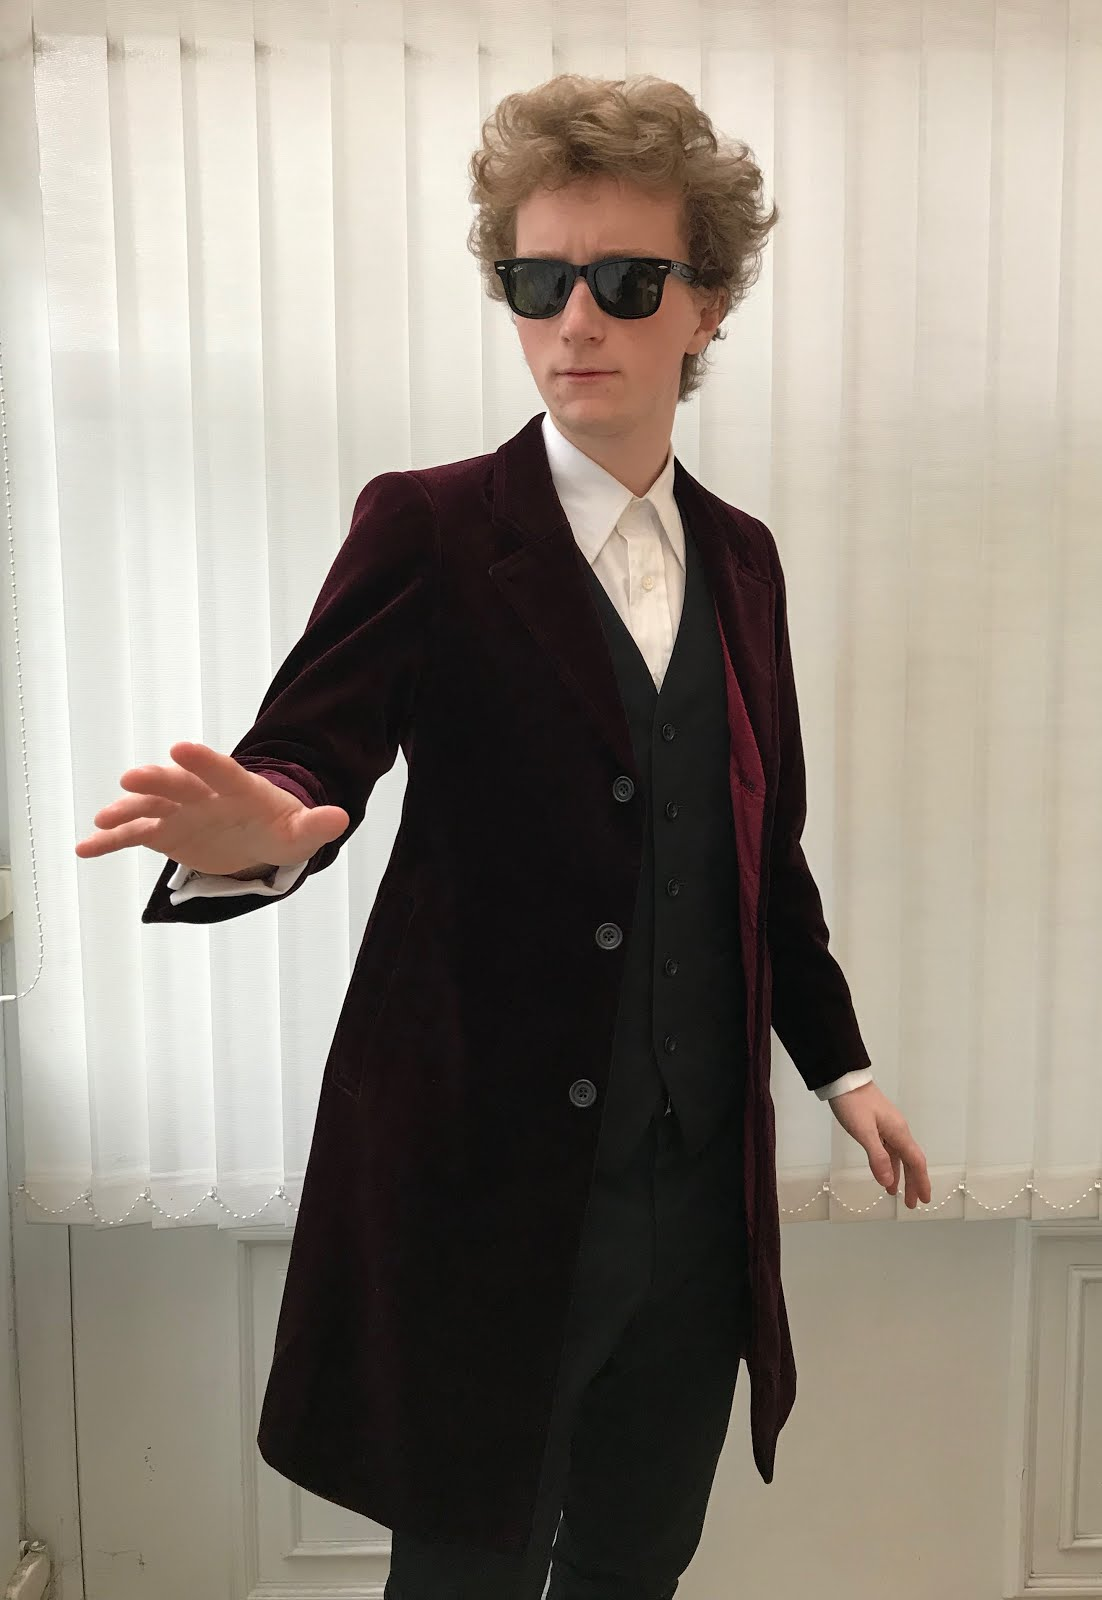 b60fbc6cec And the 14th of December 2017 marked that day. Capaldi only has 11 days  left as the Doctor